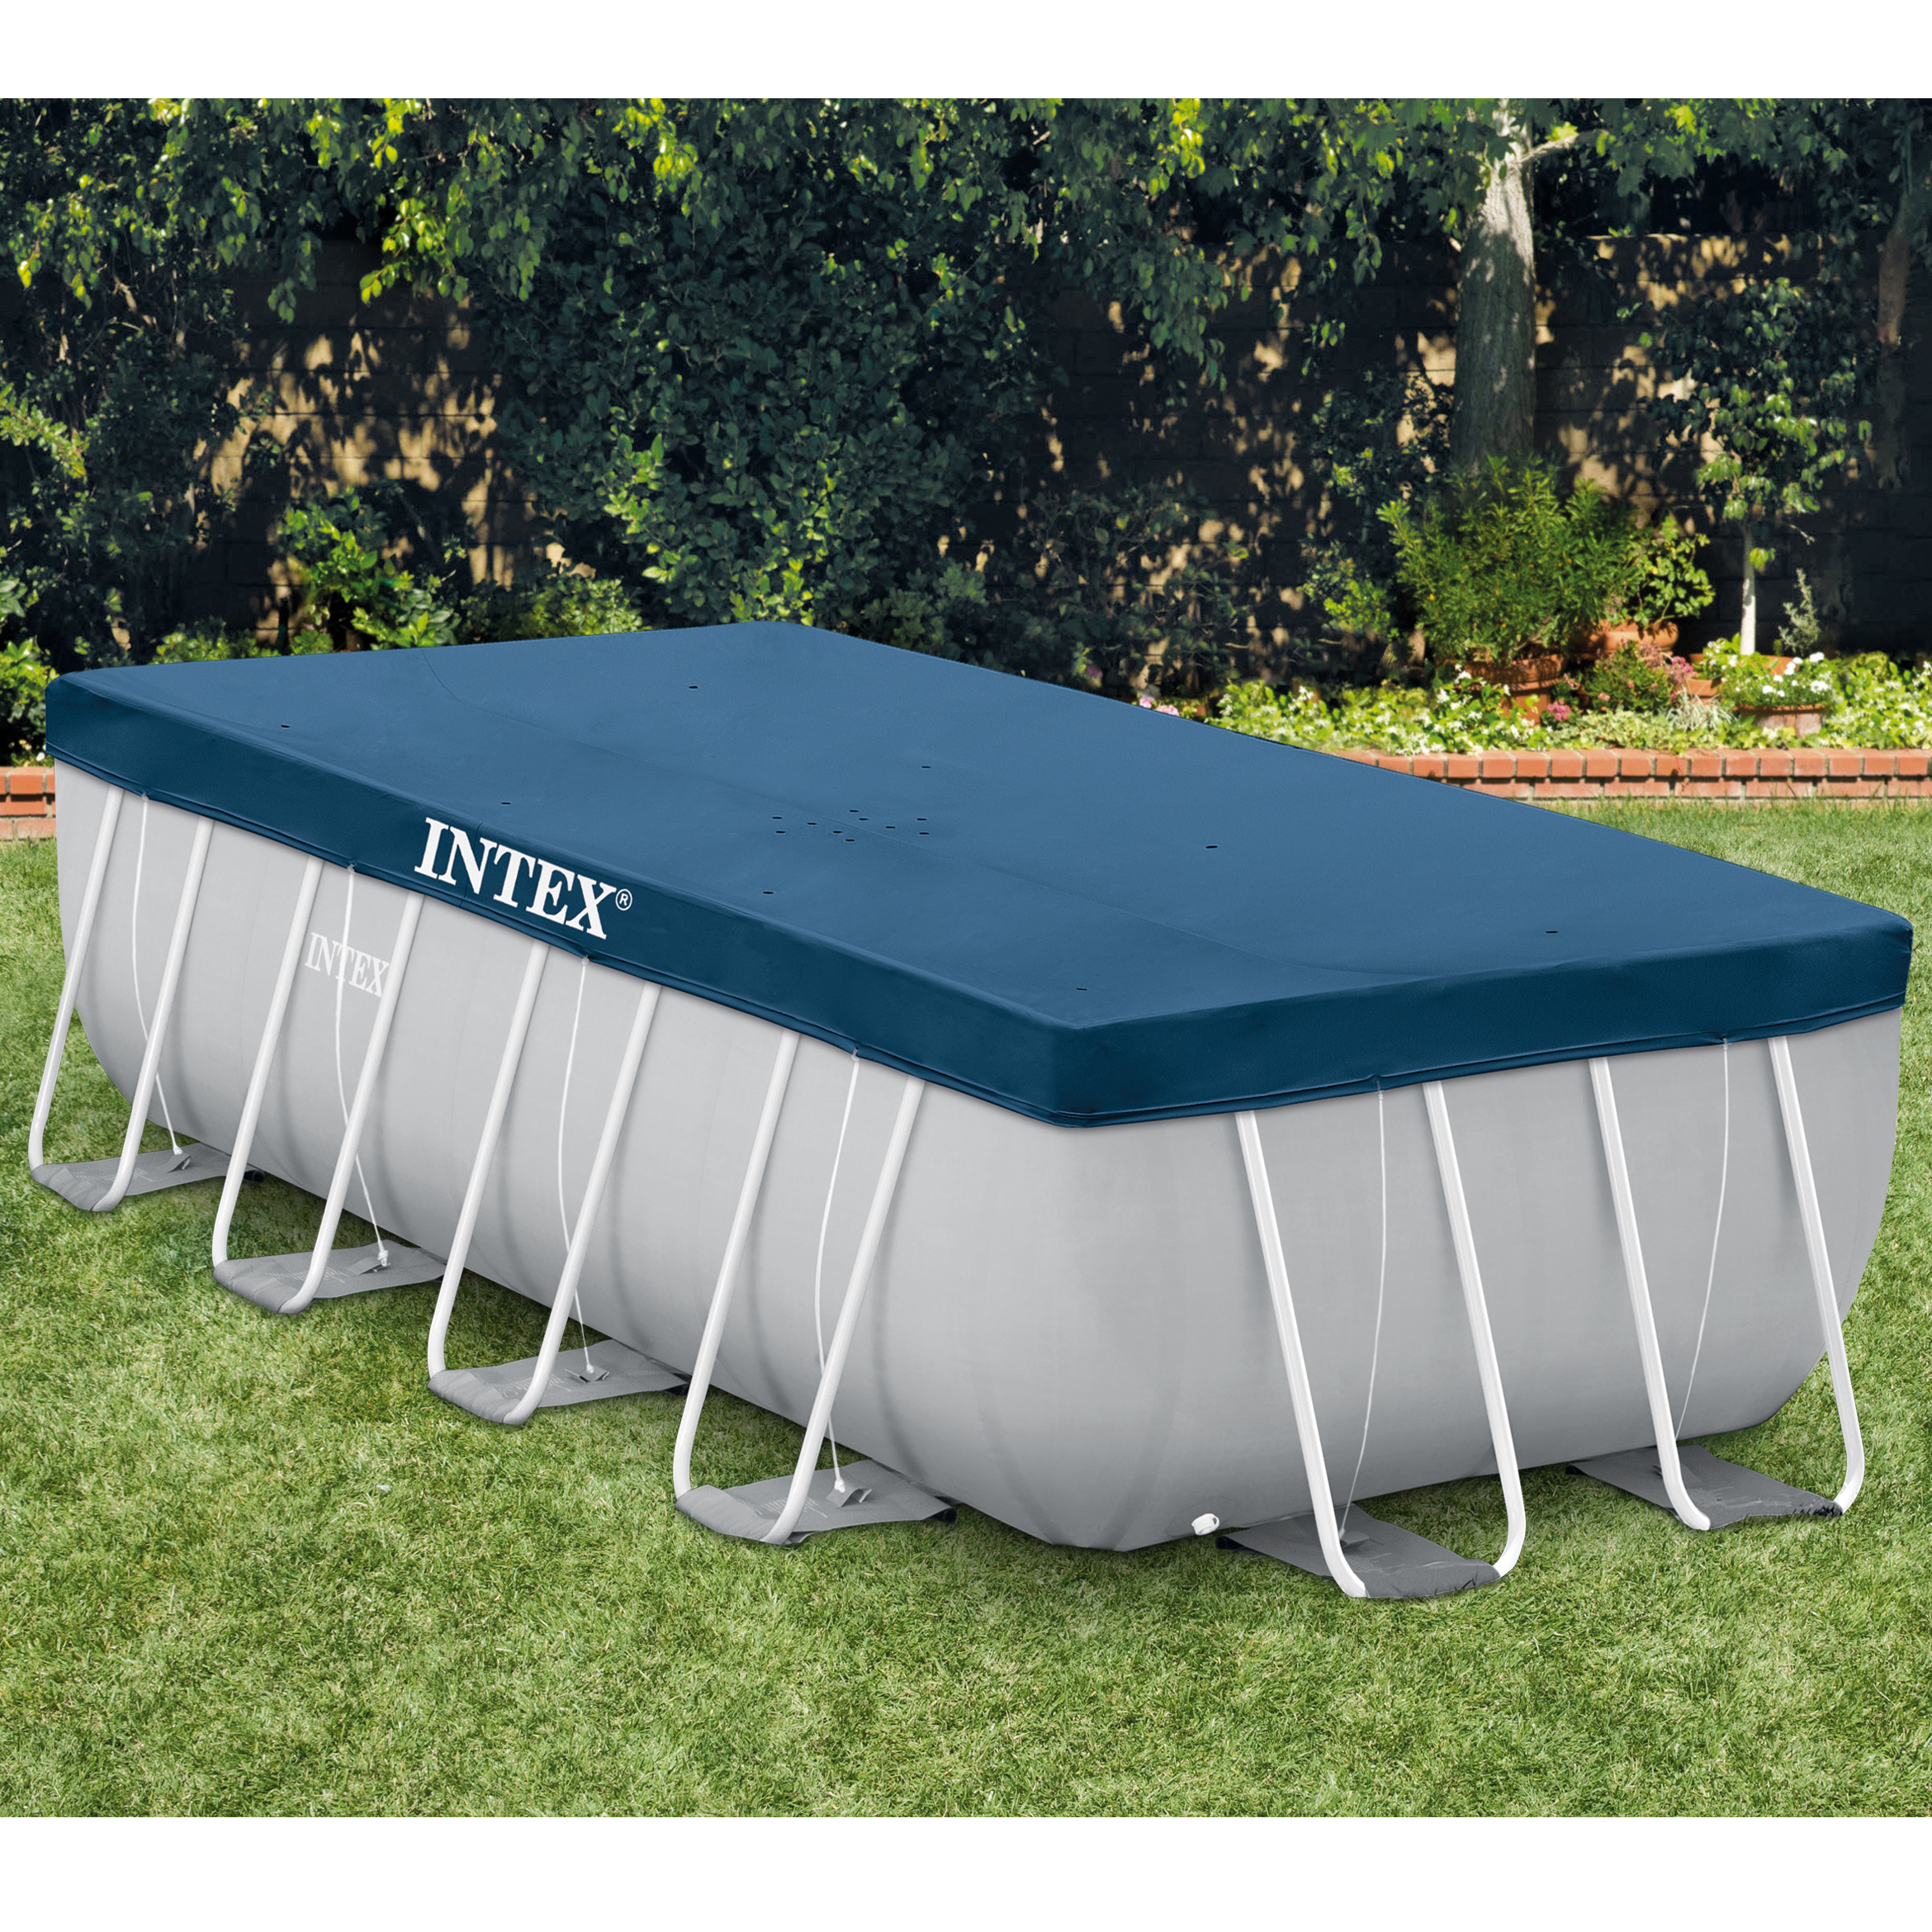 bache de protection pour piscine rectangulaire 4x2m intex